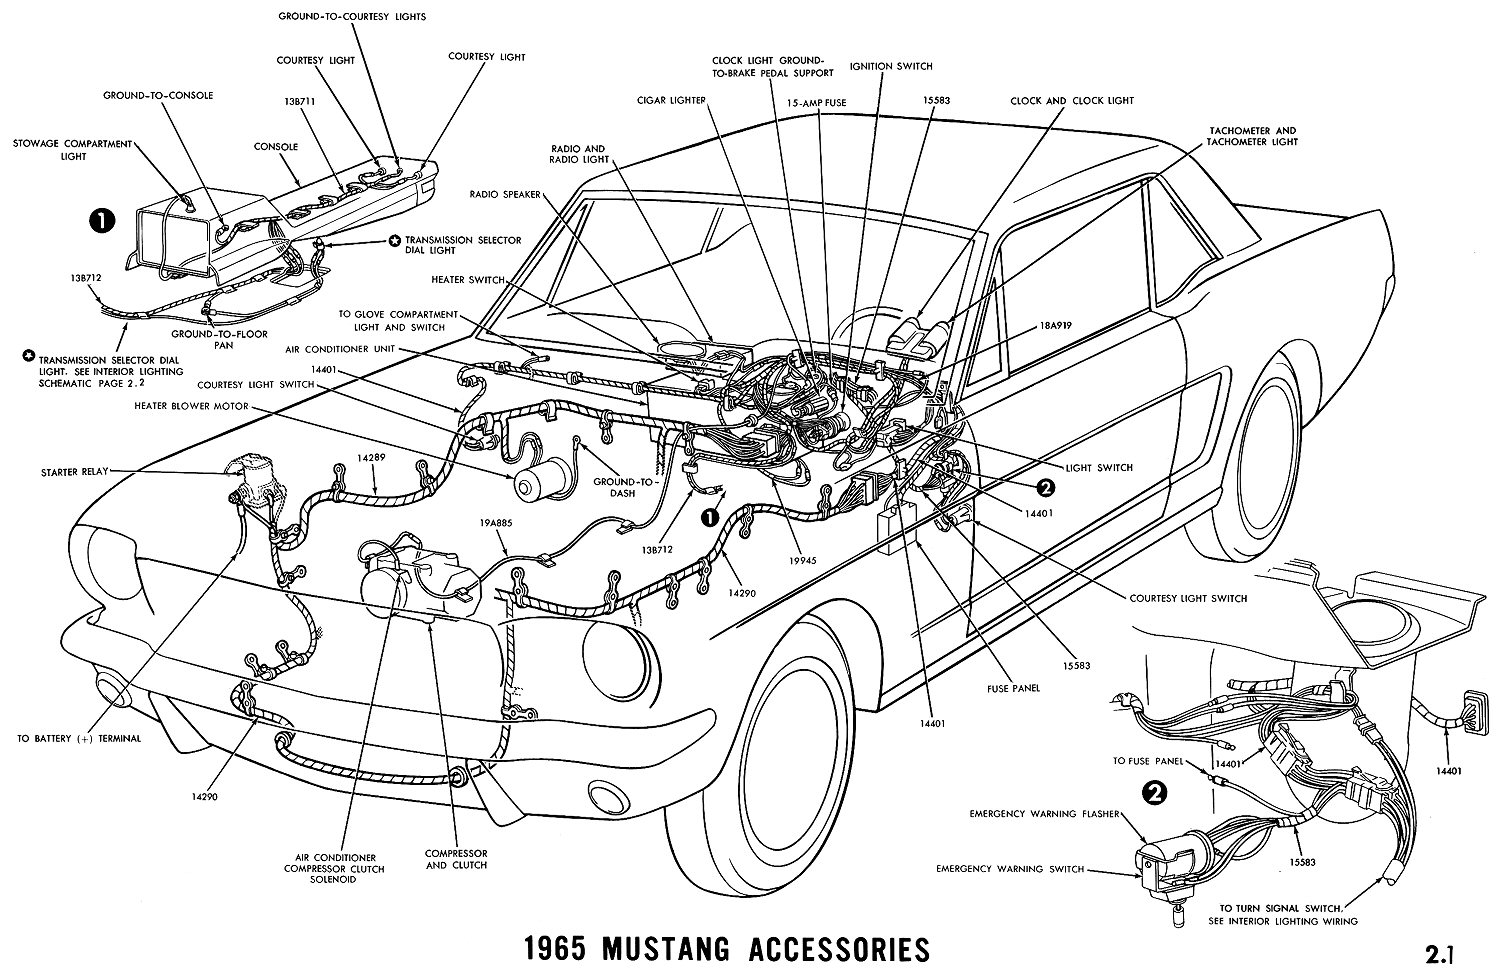 1965 Mustang Fuse Box Diagram 69 Mustang Fuse Box • Wiring